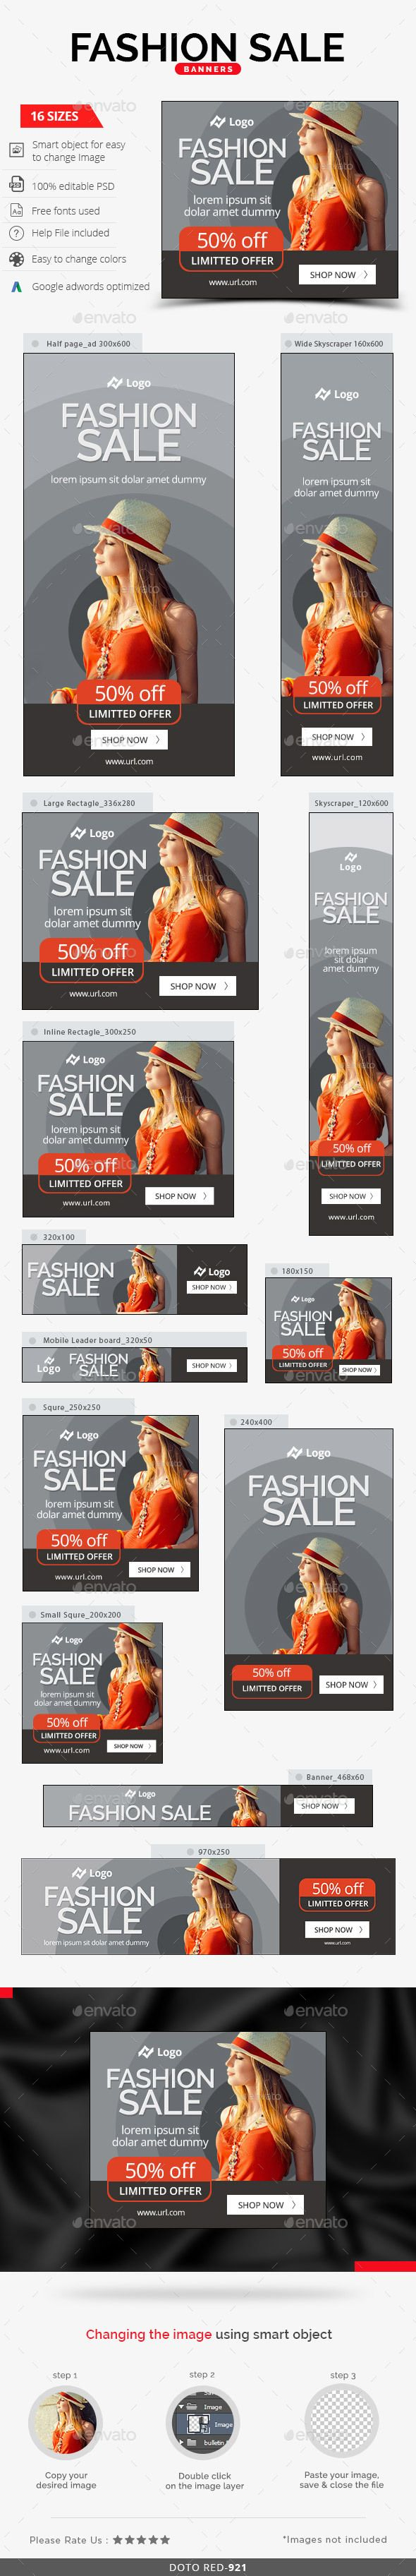 Fashion Sale Web Banners Template PSD #design Download…